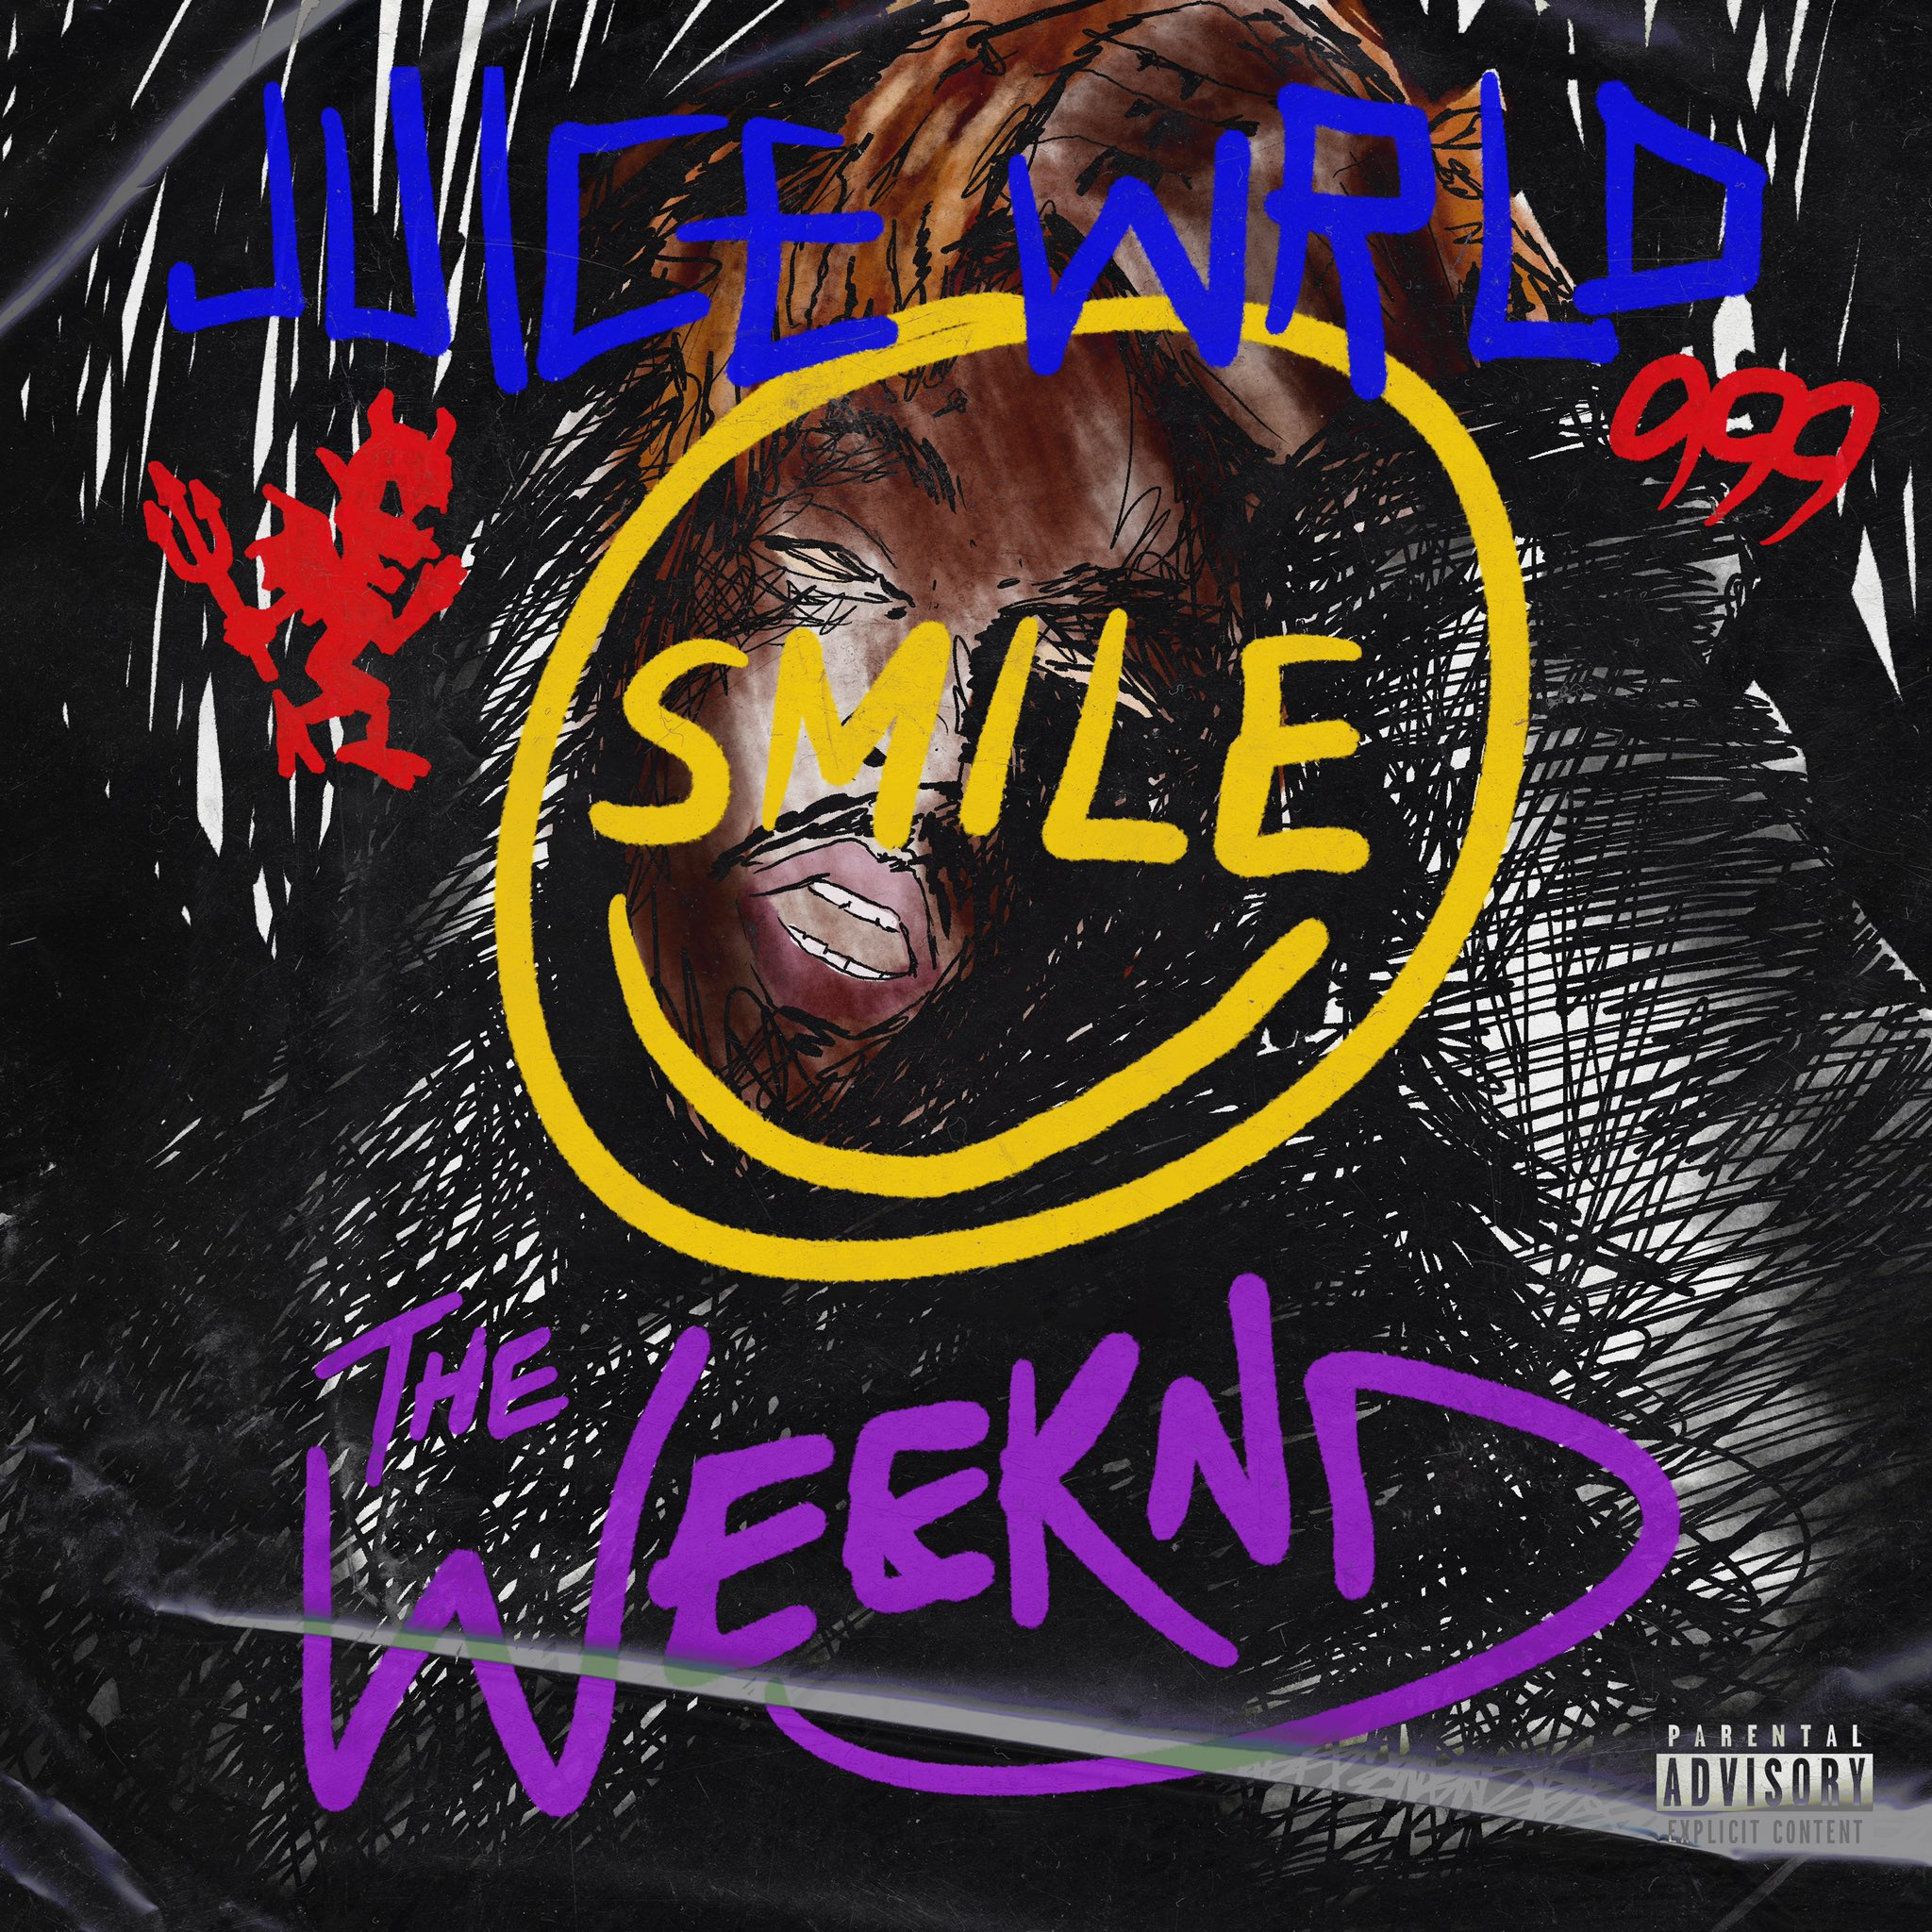 Smile Juice Wrld Roblox Id Code New Music Friday Juice Wrld The Weeknd Luke Bryan And More Umusic